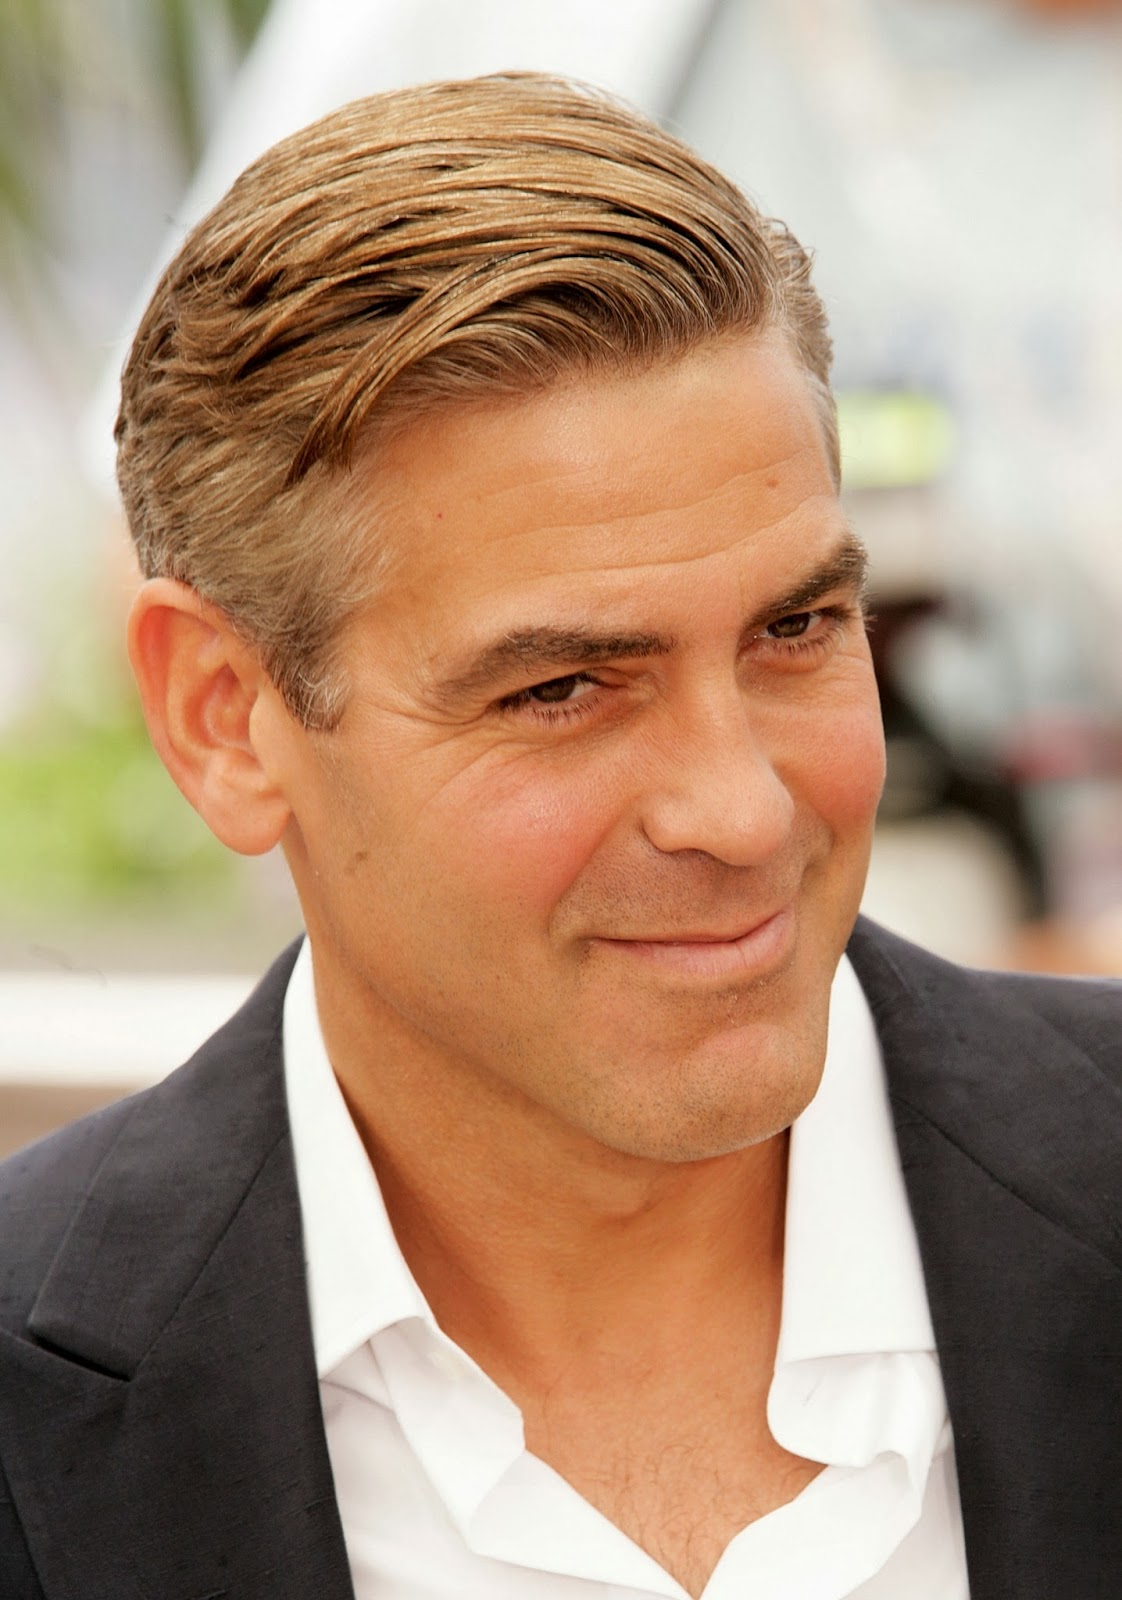 Hairstyles for Men with Thick Hair ~ Direct Hairstyles